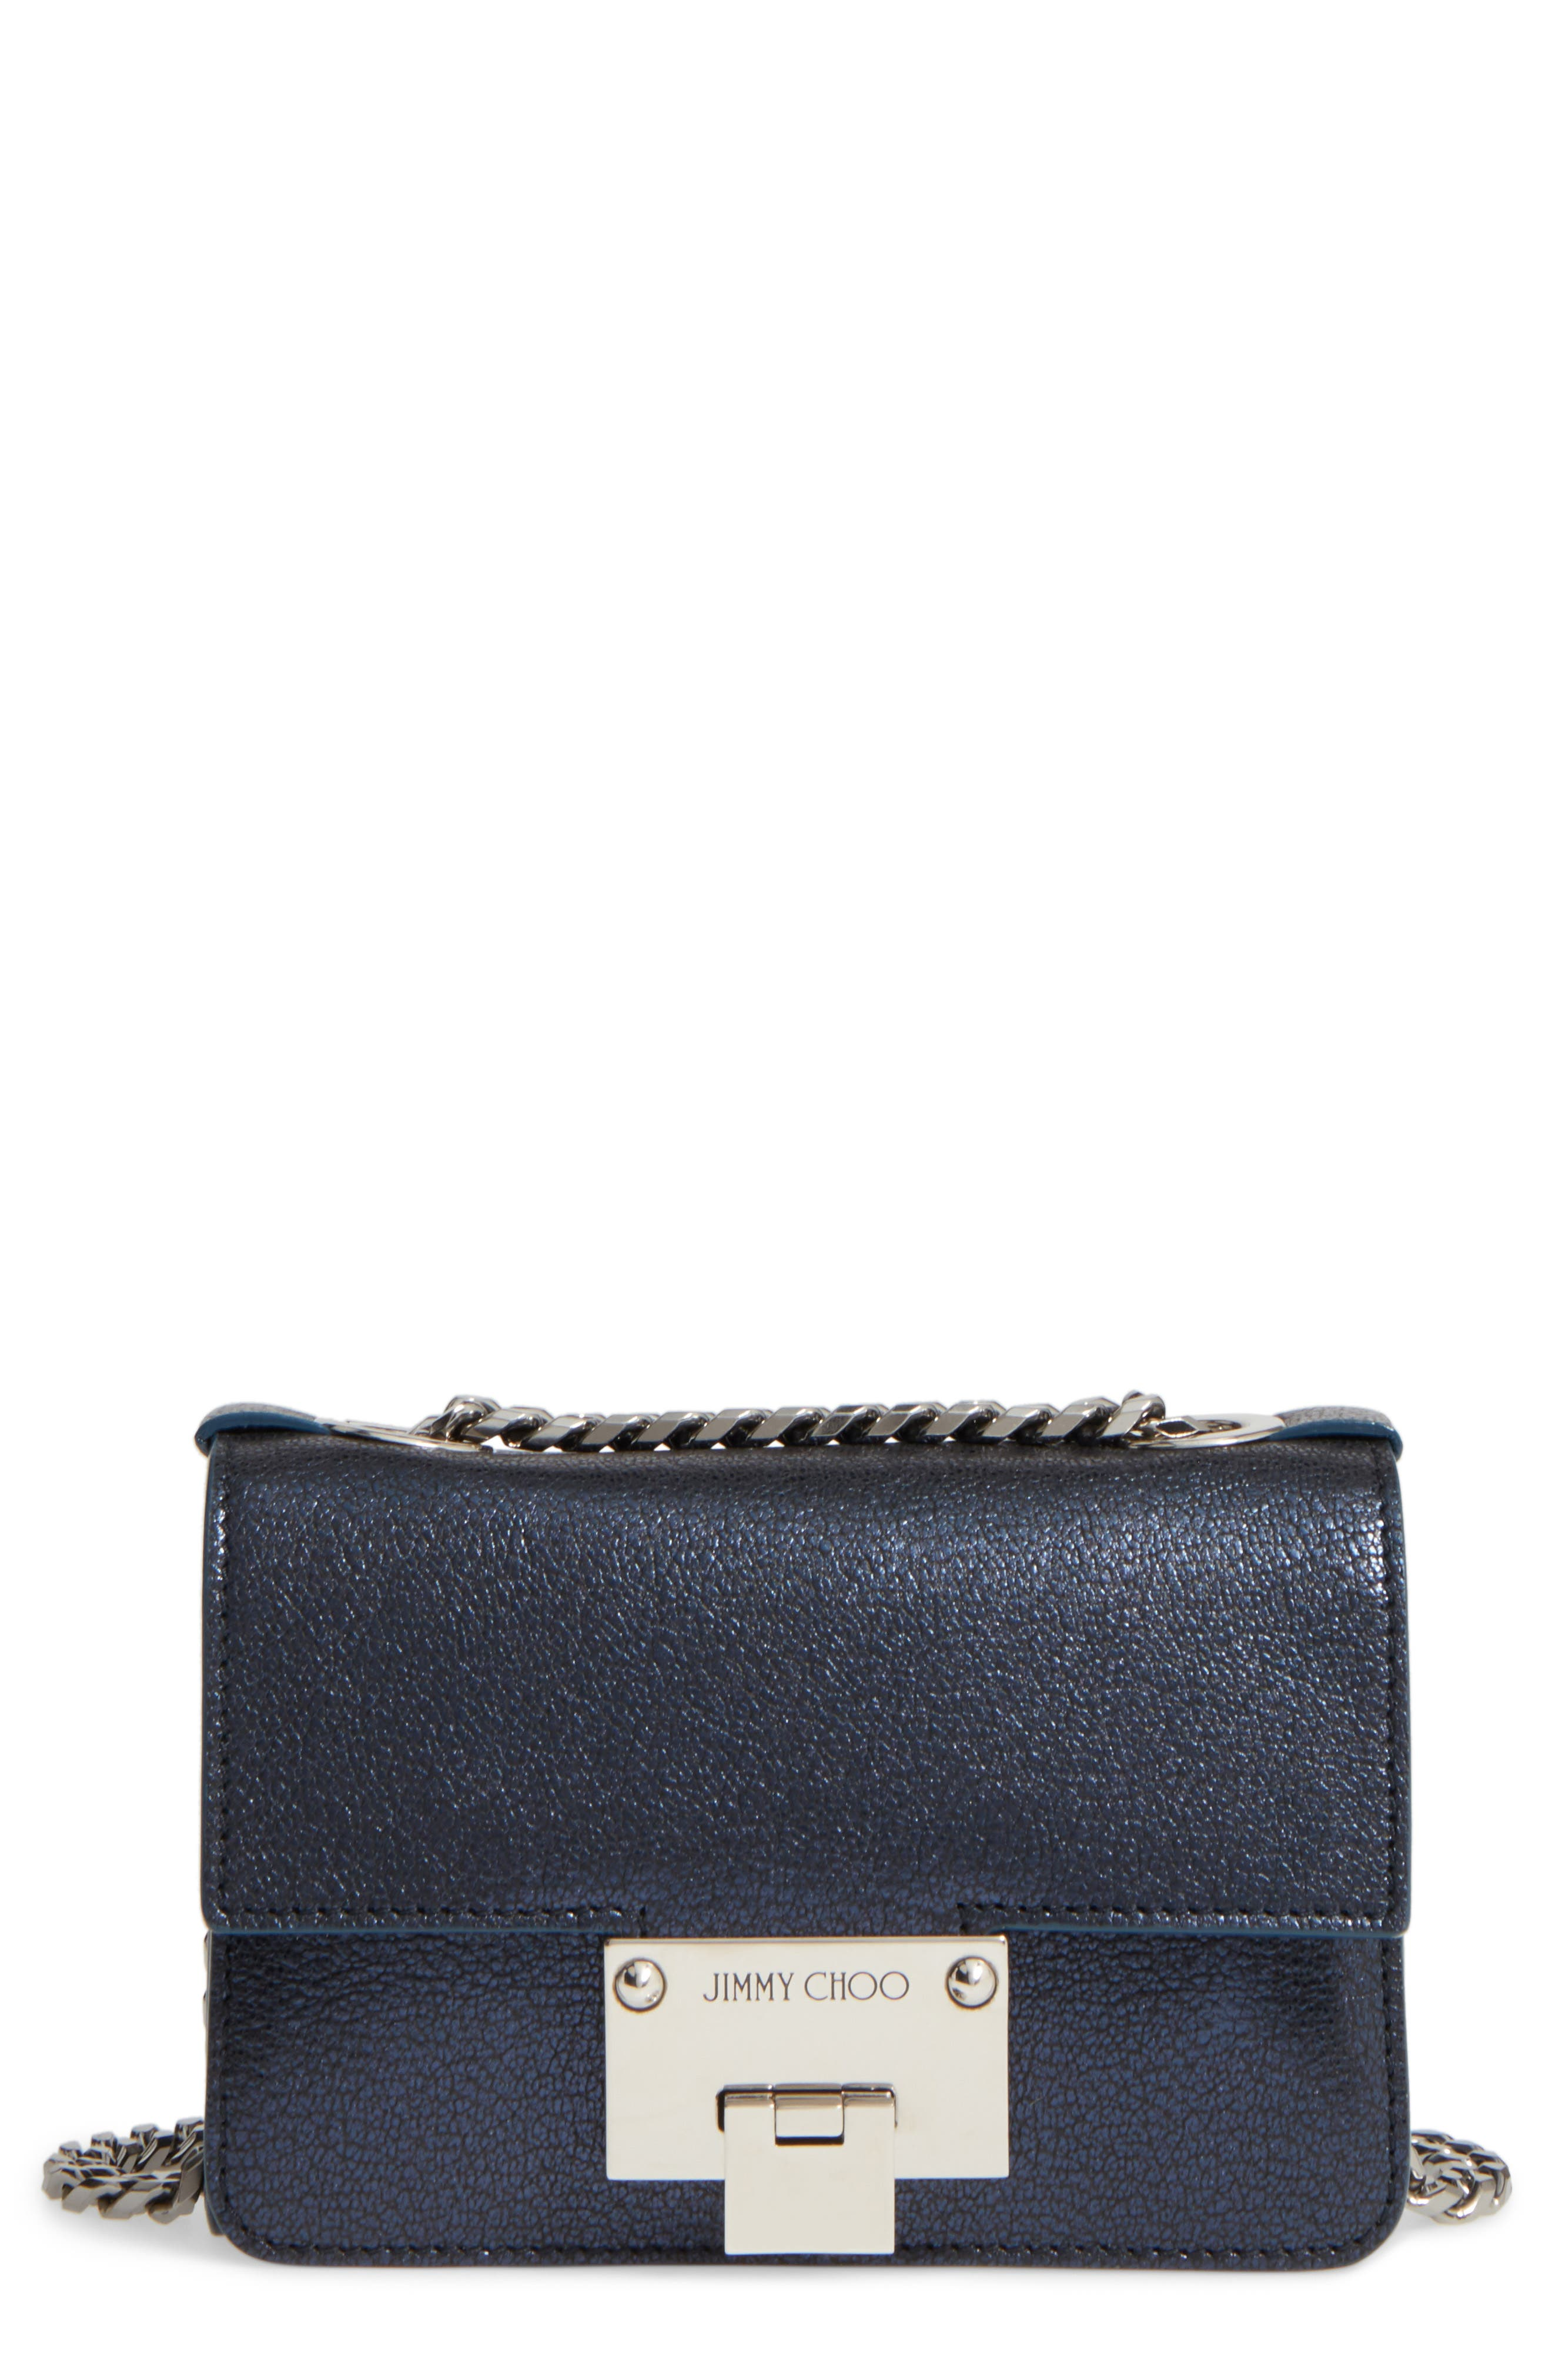 Jimmy Choo Mini Rebel Metallic Leather Crossbody Bag